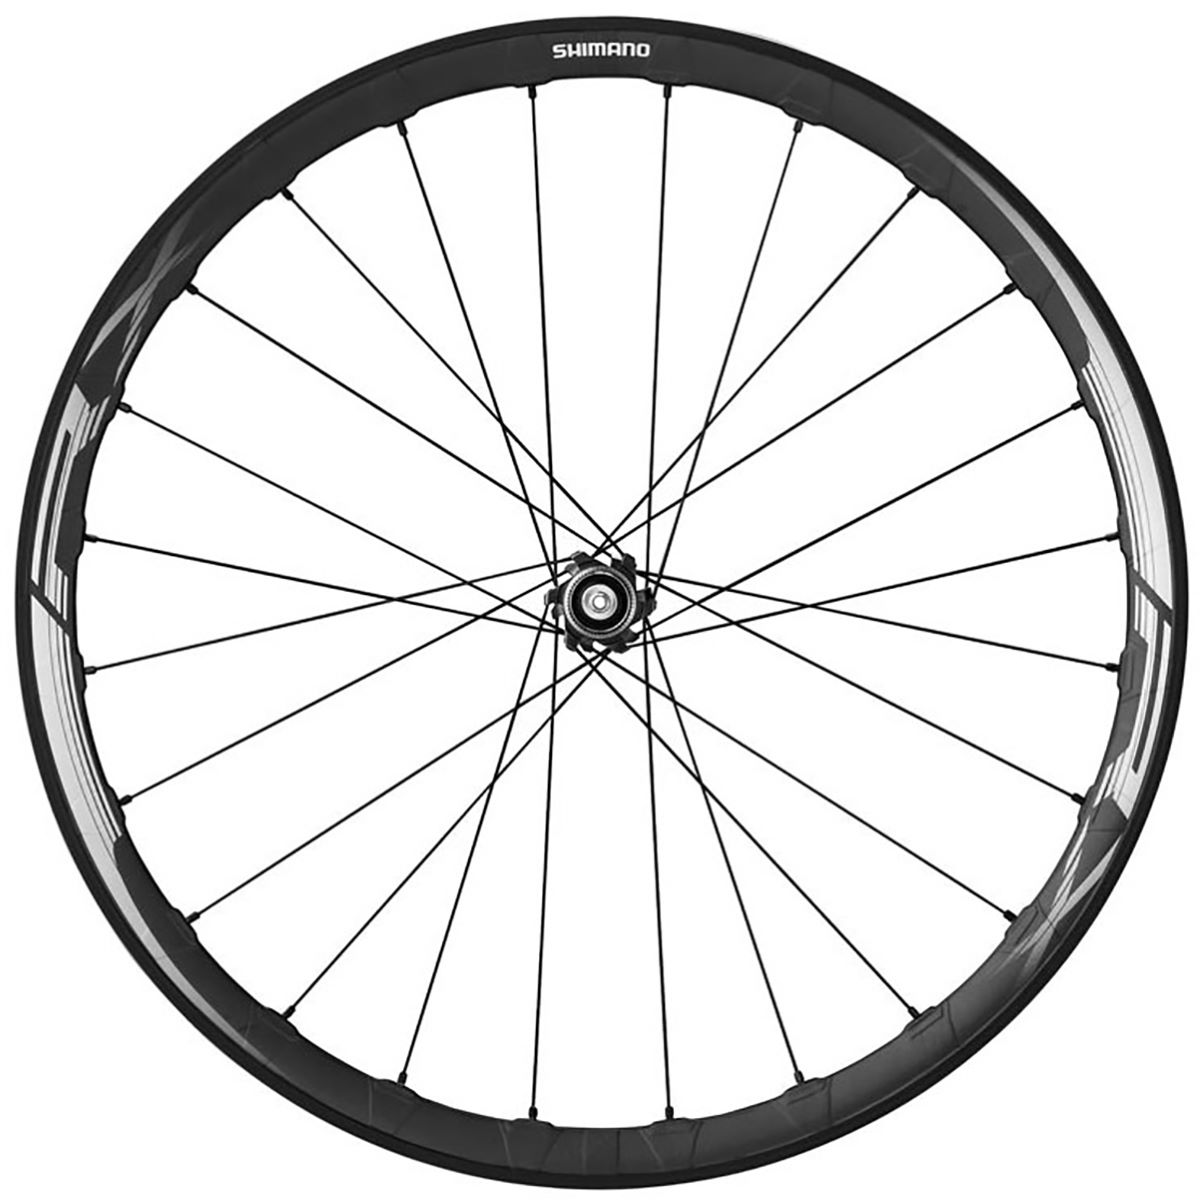 Shimano RX830 Road Disc Front Wheel   Front Wheels